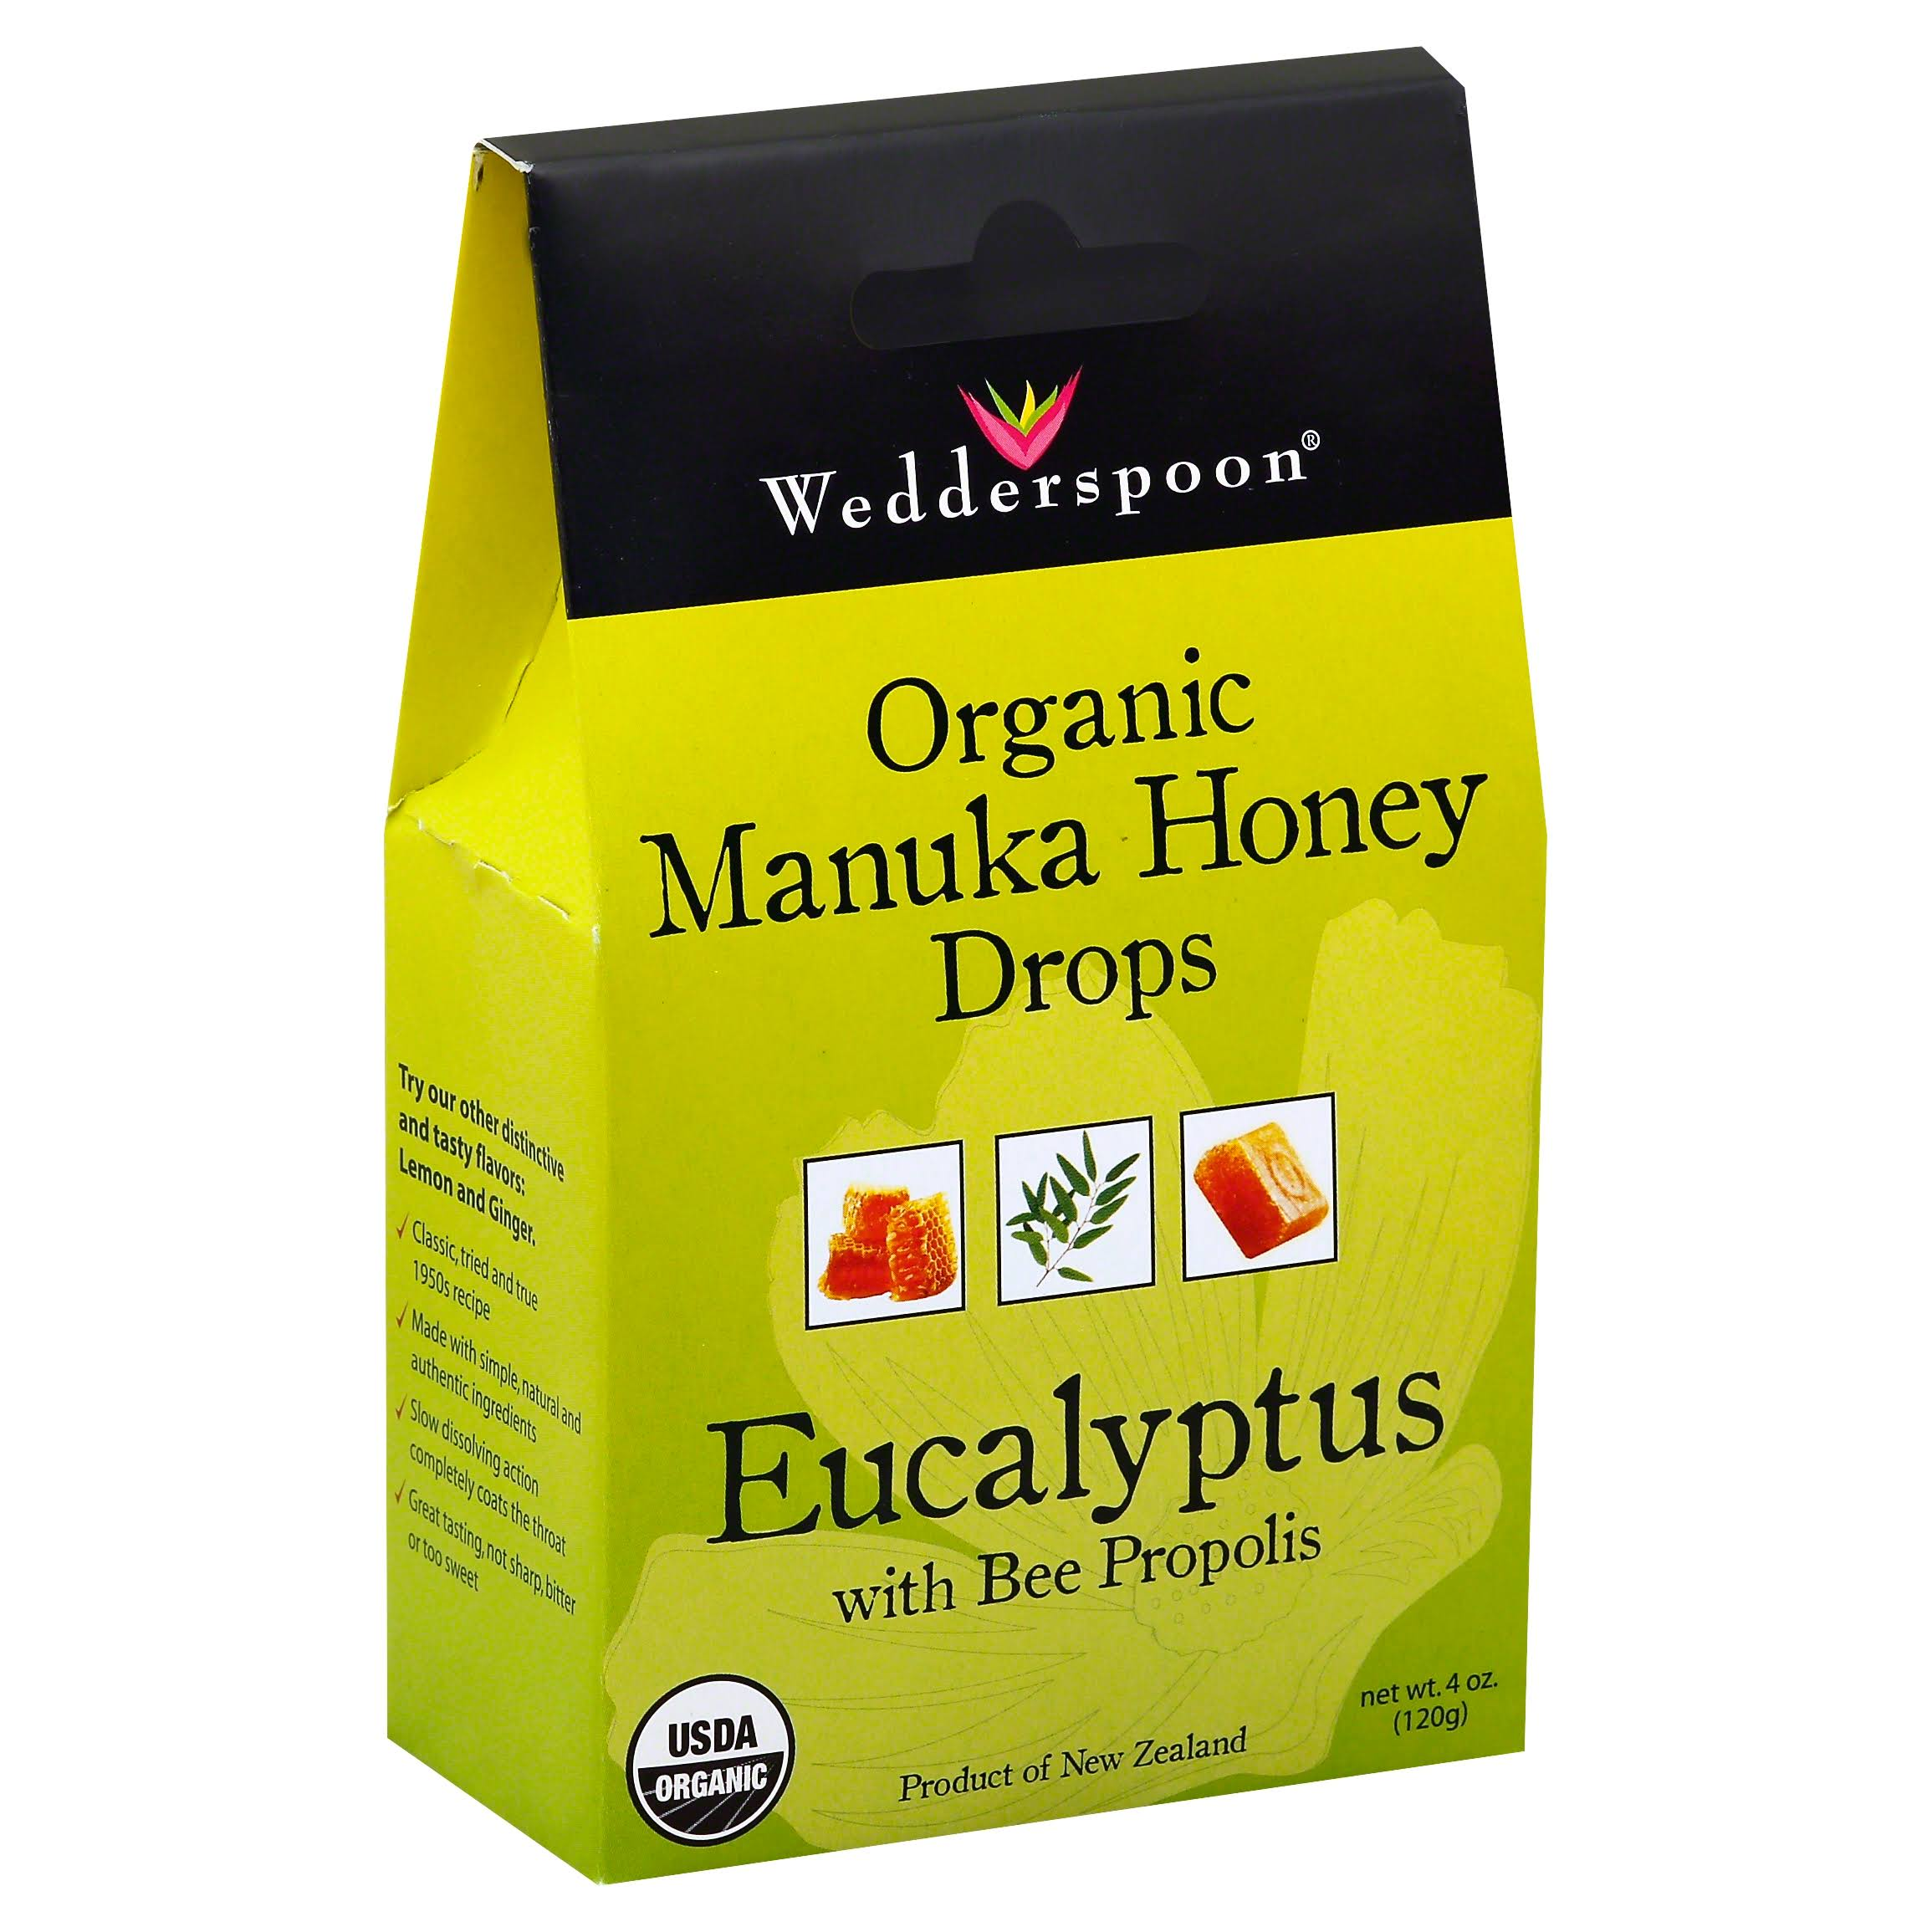 Wedderspoon Organic Manuka Honey Drops - Eucalyptus with Bee Propolis